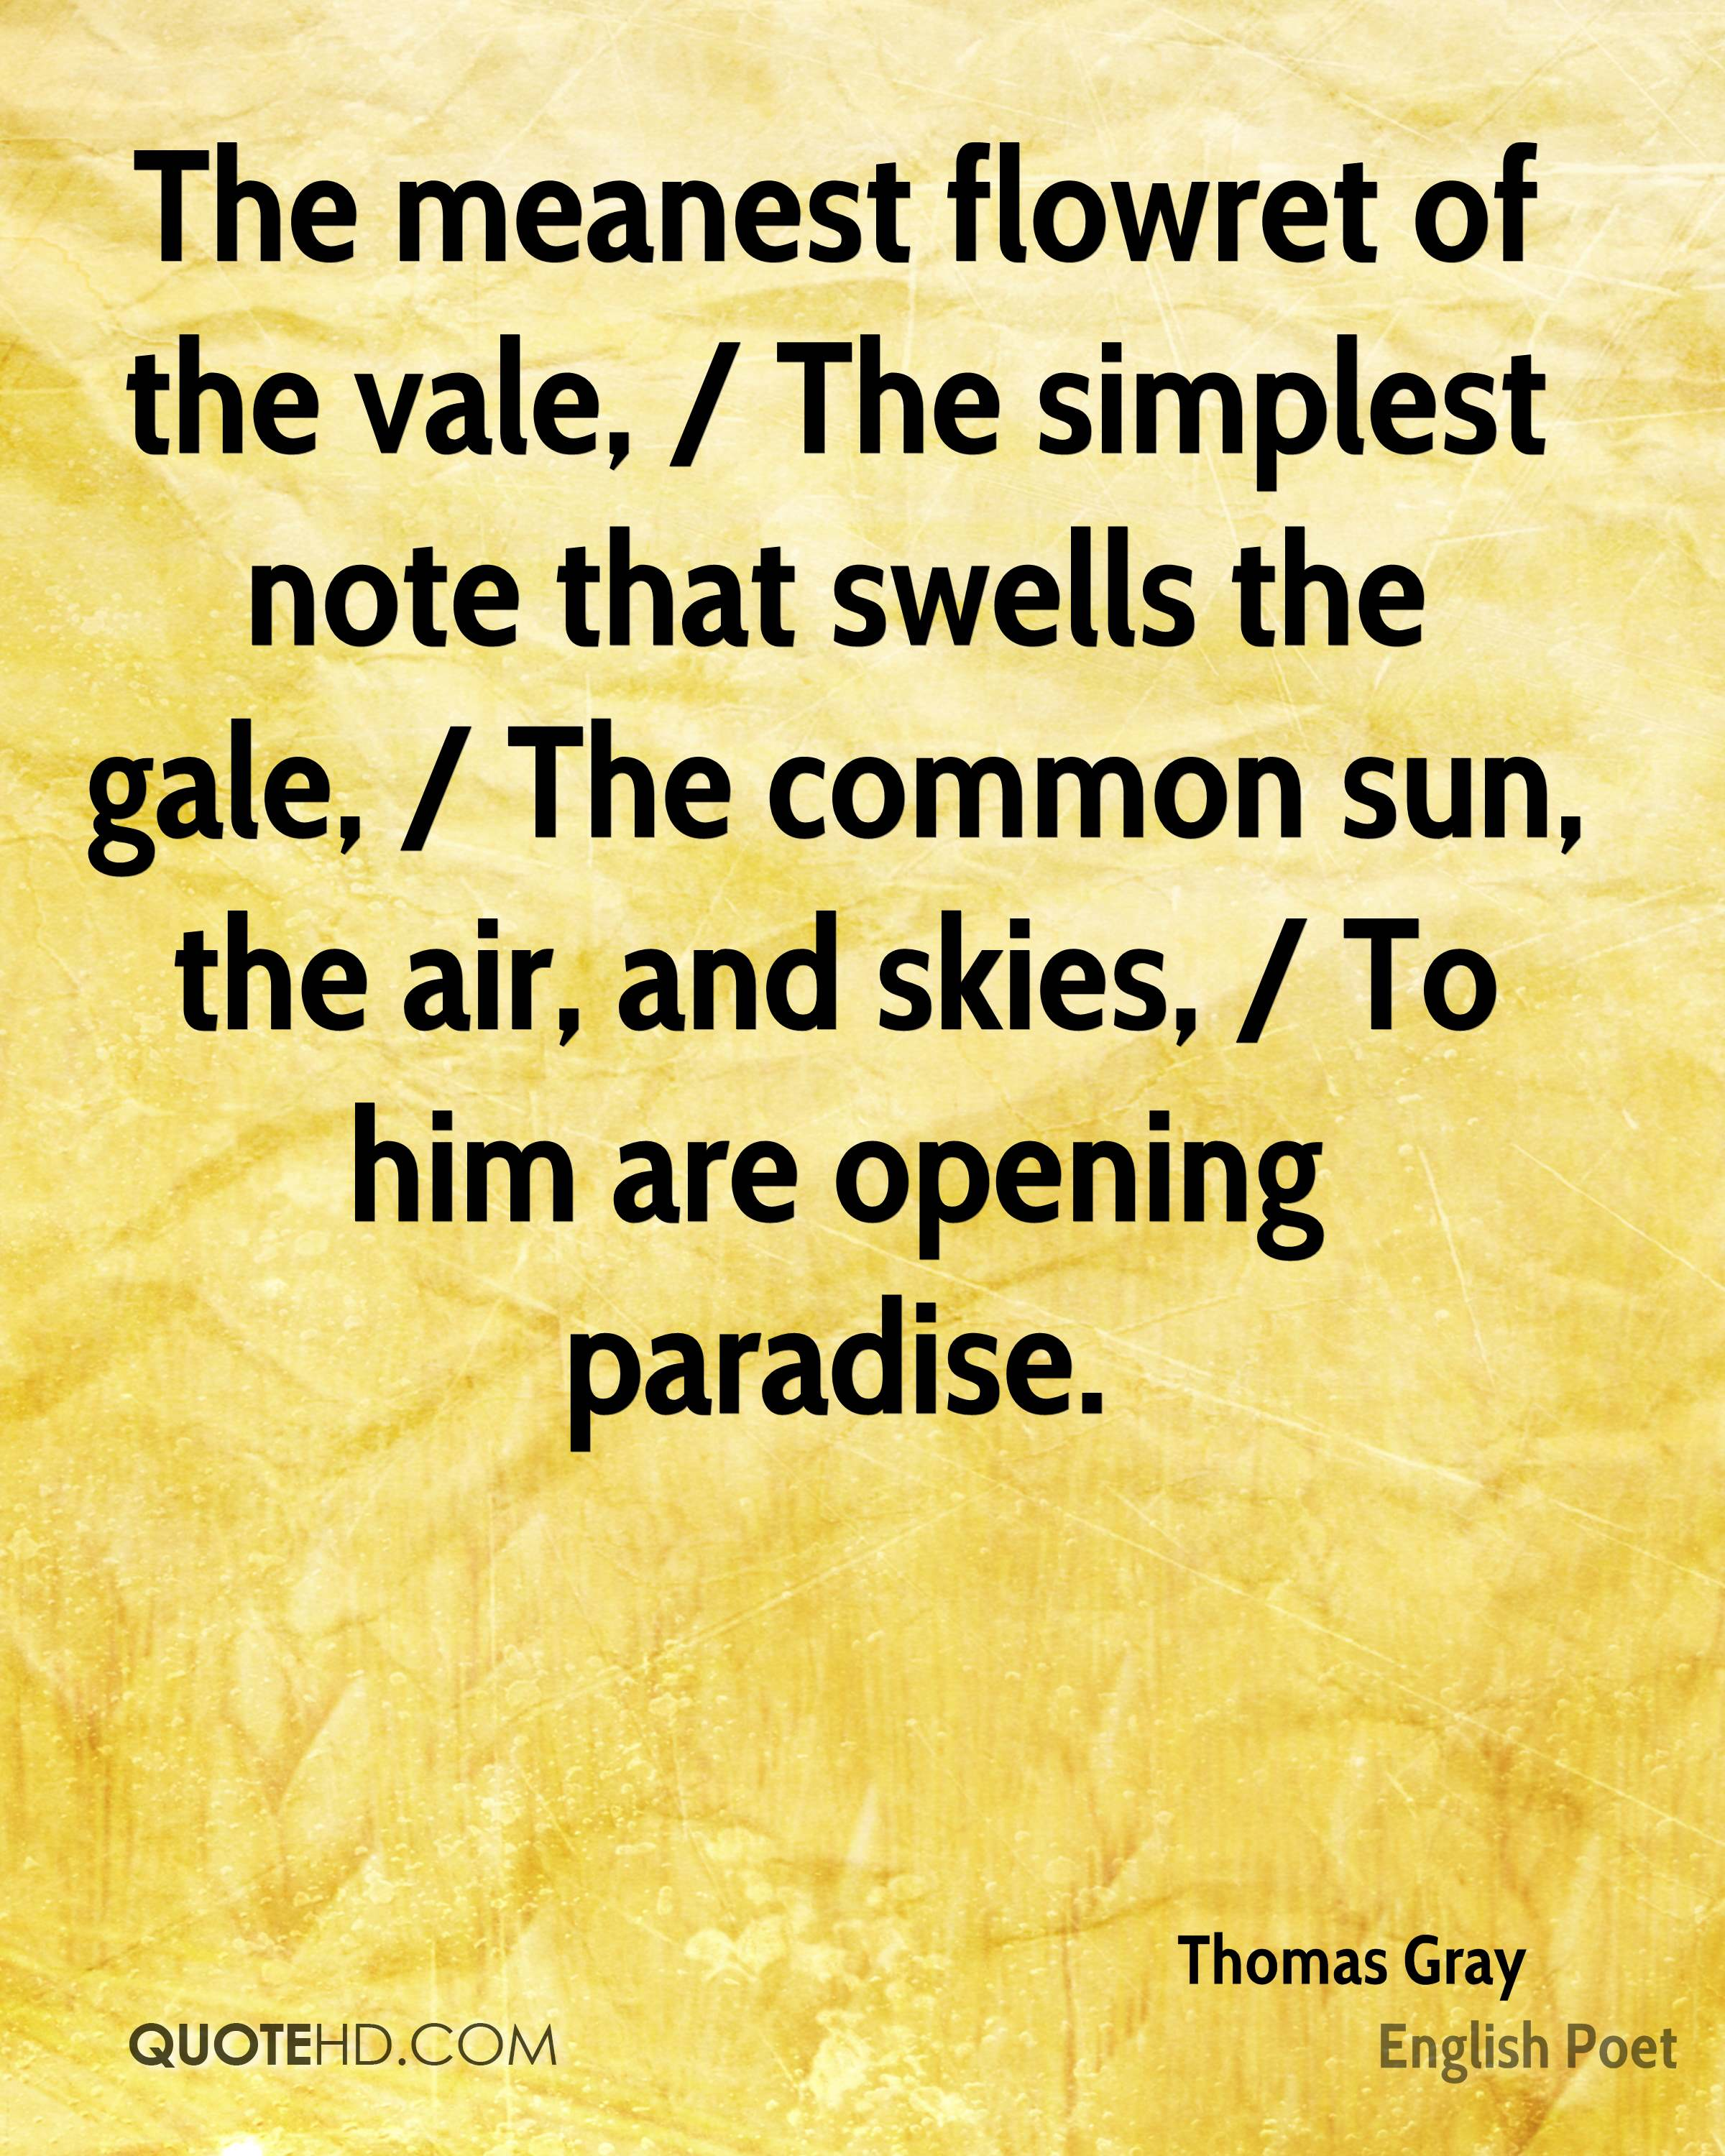 The meanest flowret of the vale, / The simplest note that swells the gale, / The common sun, the air, and skies, / To him are opening paradise.